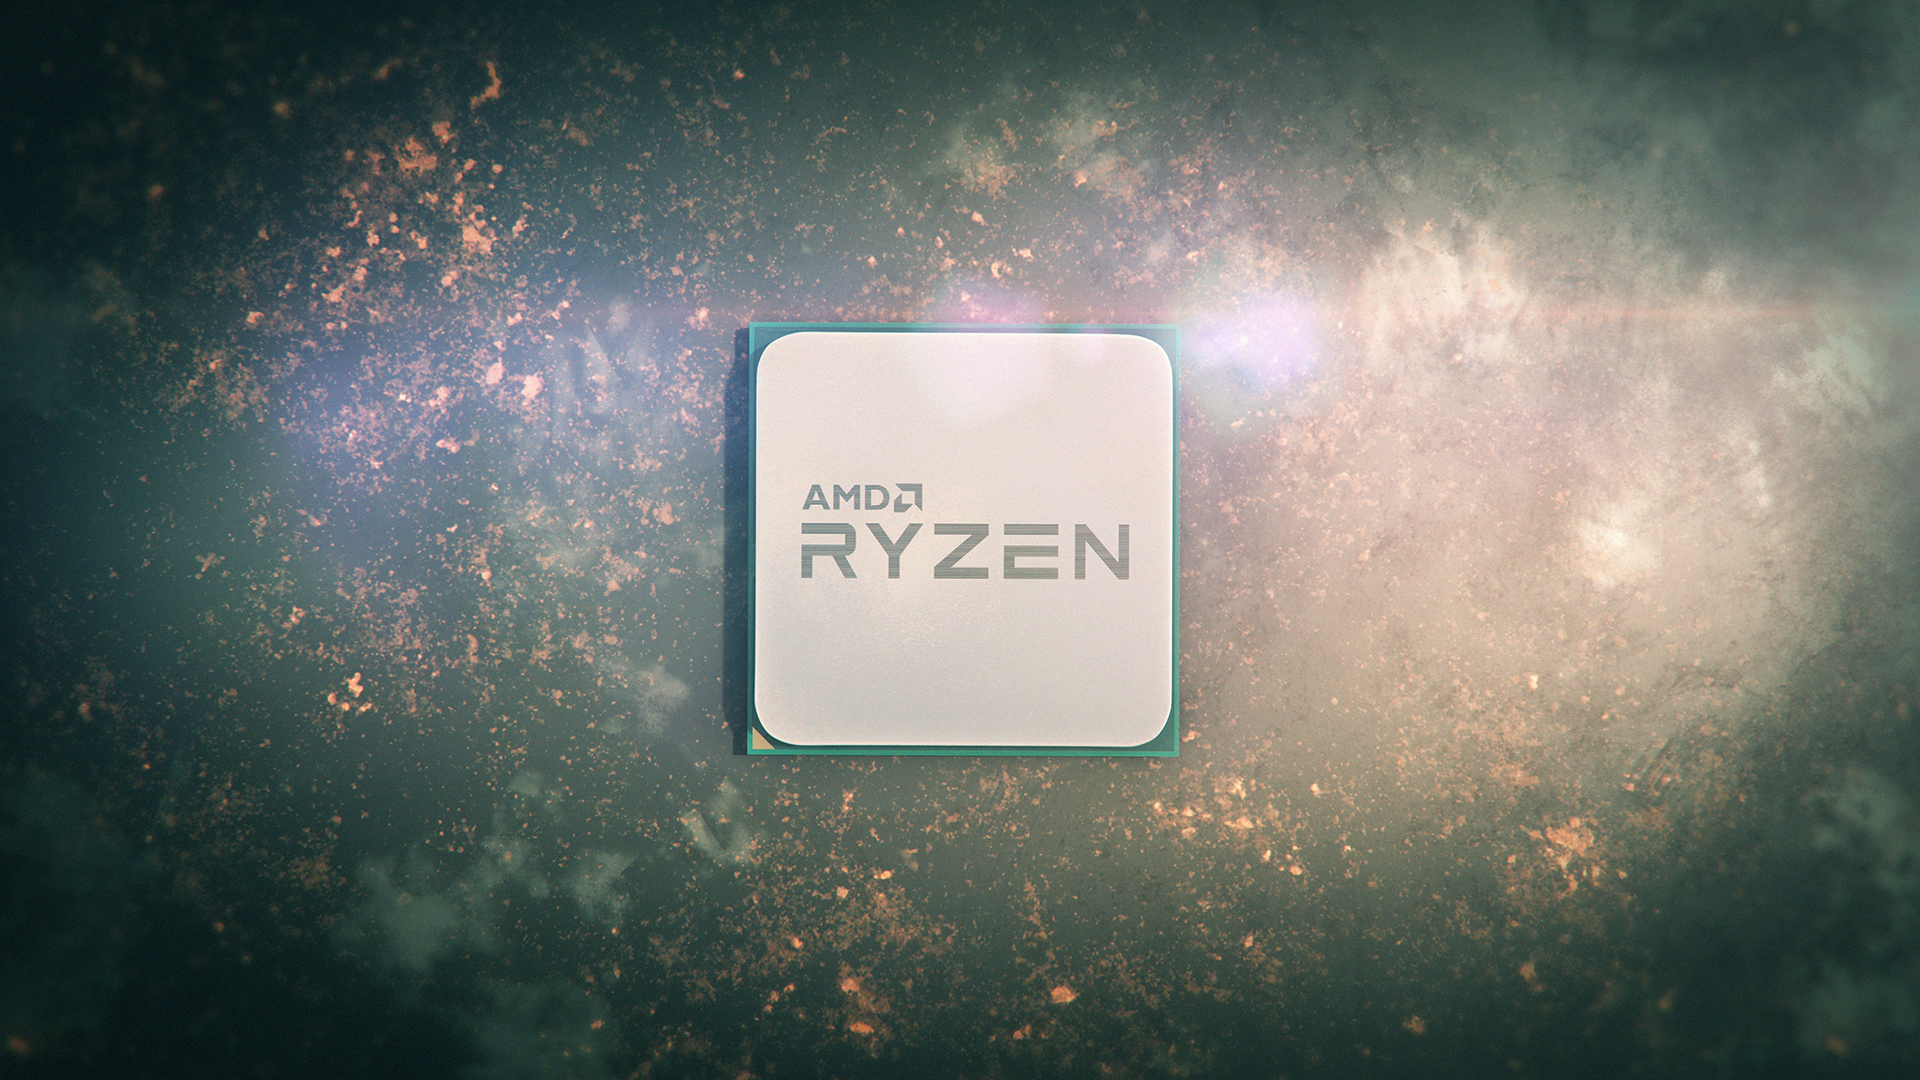 Amd Ryzen 3rd Generation Release Date News And Rumors Latest News